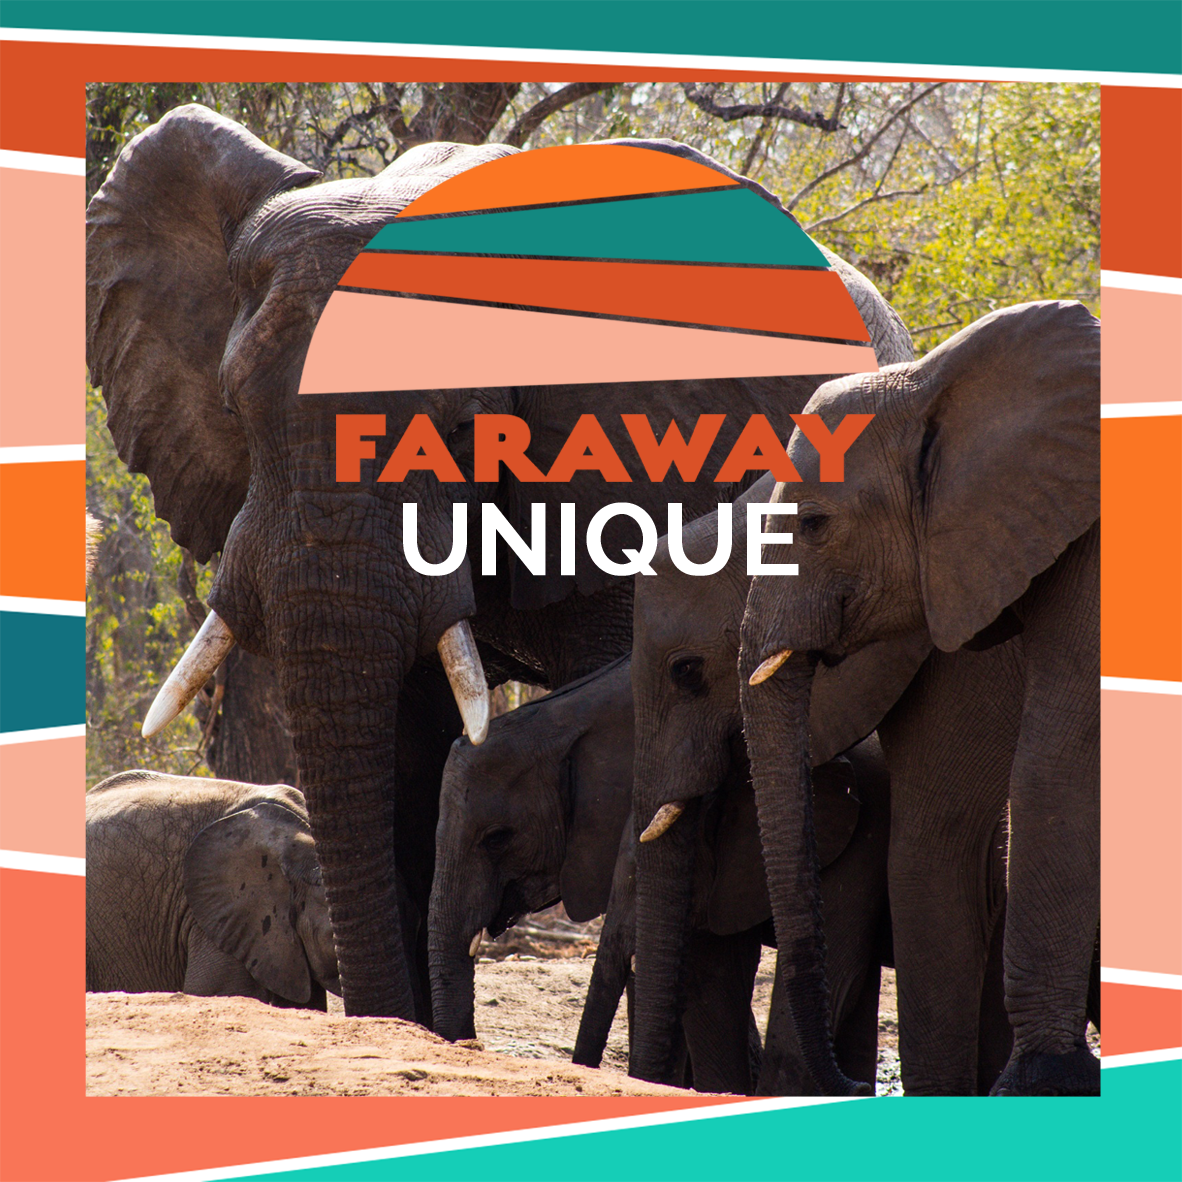 Faraway Unique trips - from celebrations to sabbaticals; our bespoke trips are tailored to what you love